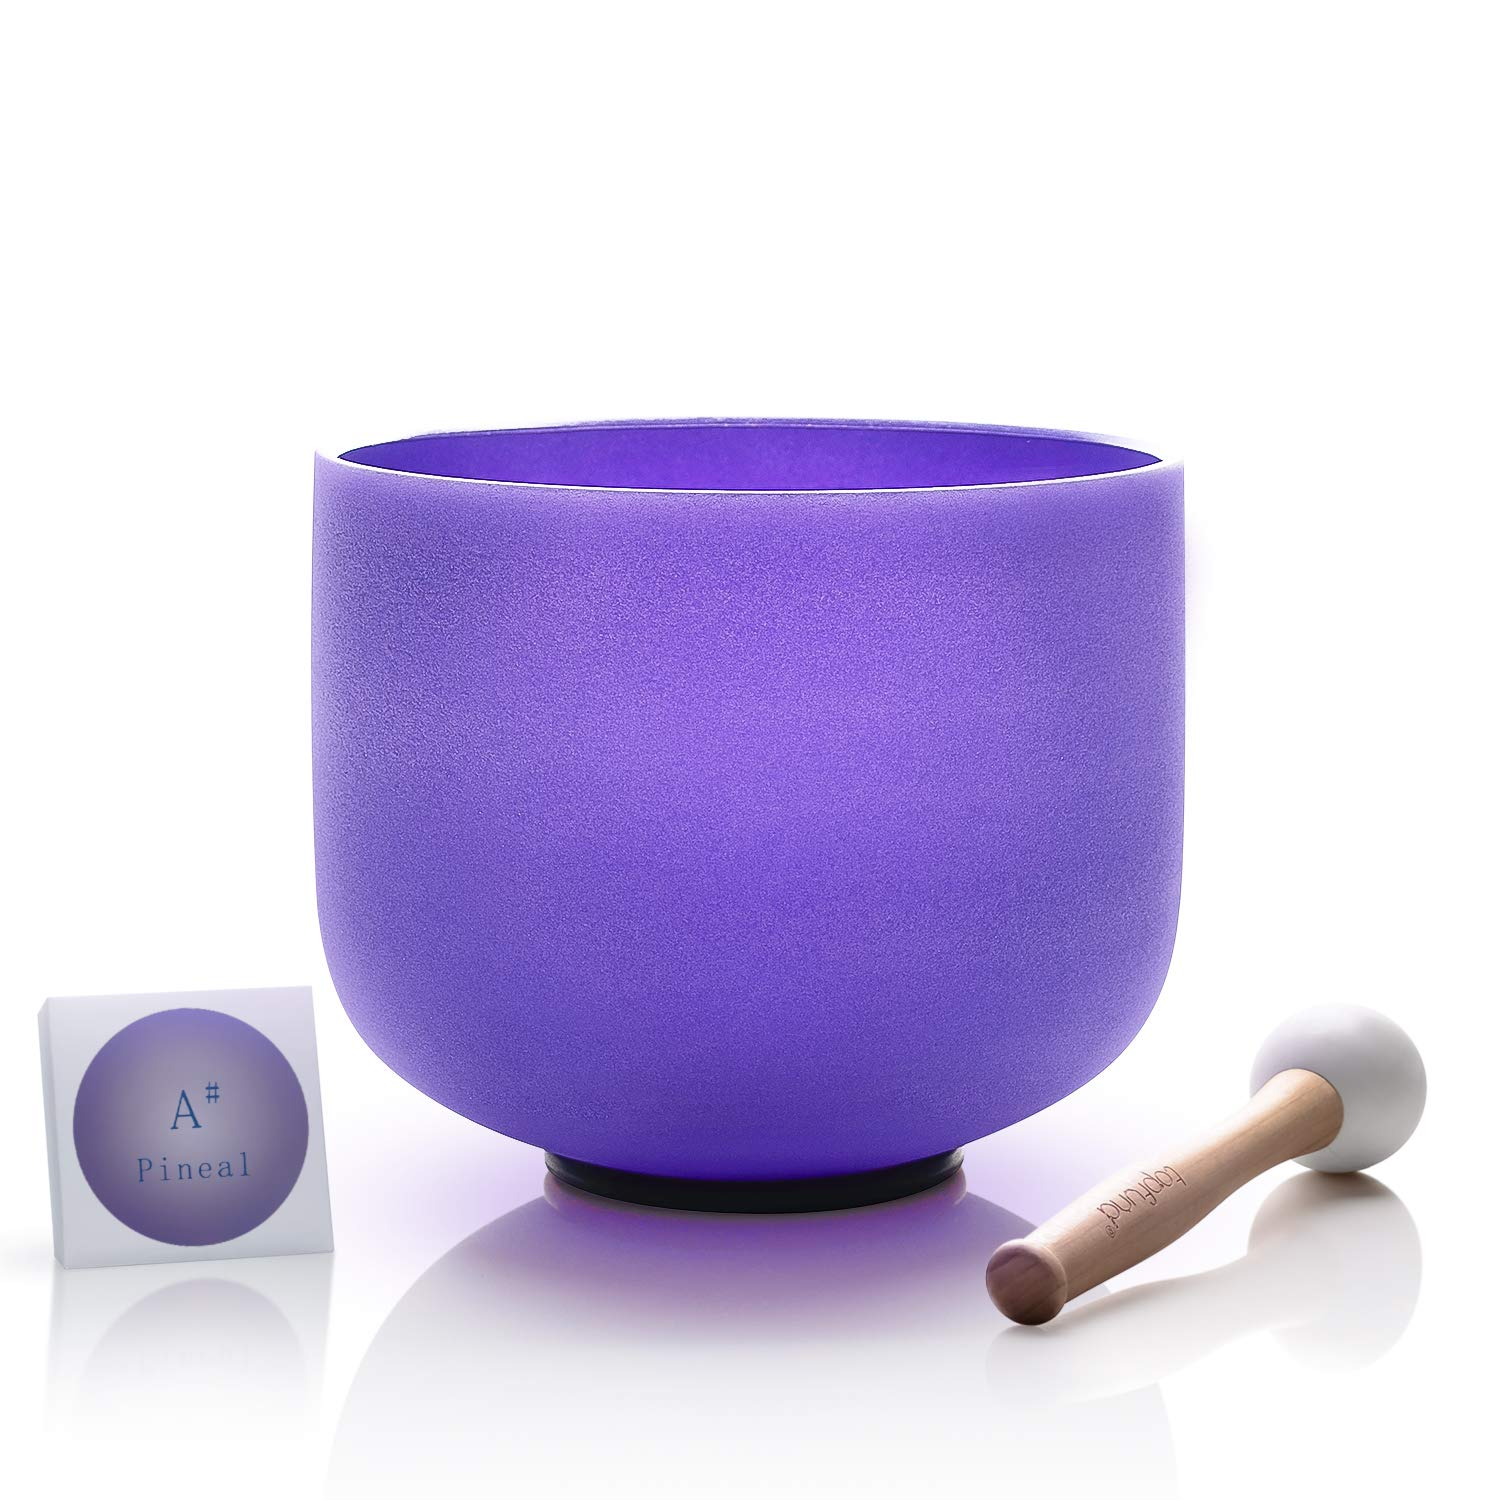 TOPFUND Crystal Singing Bowl Violet Color A# Note Pineal Chakra 8 inch,O-Ring and Rubber Mallet Included